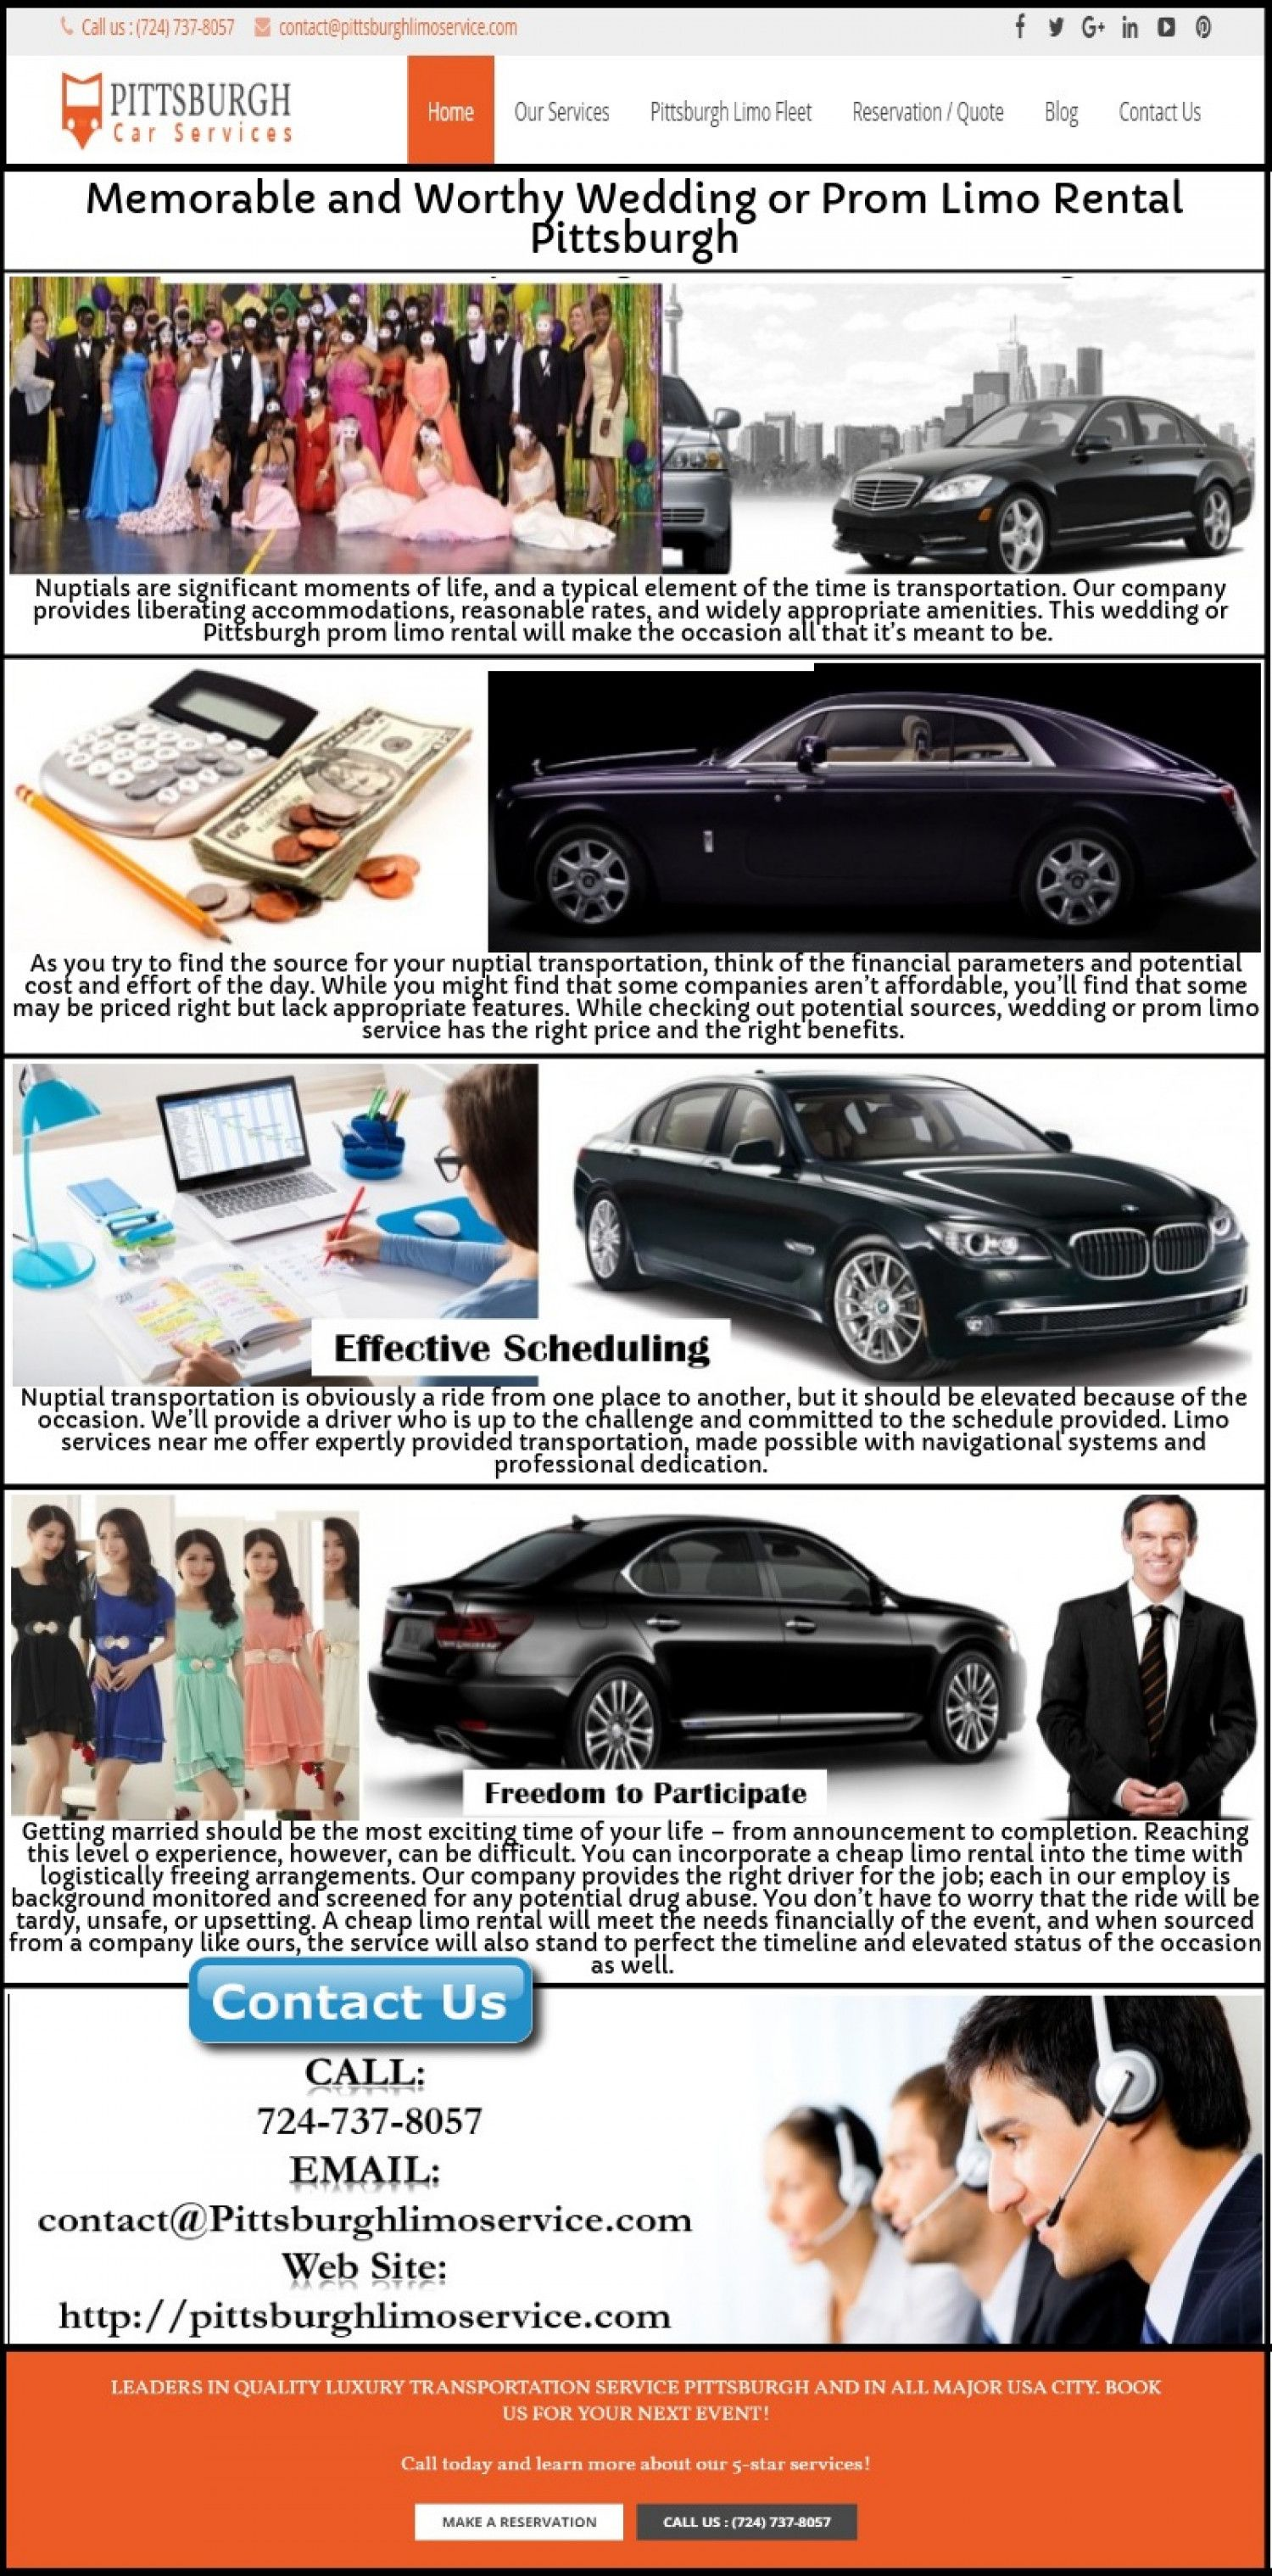 Memorable and Worthy Wedding or Prom Limo Rental